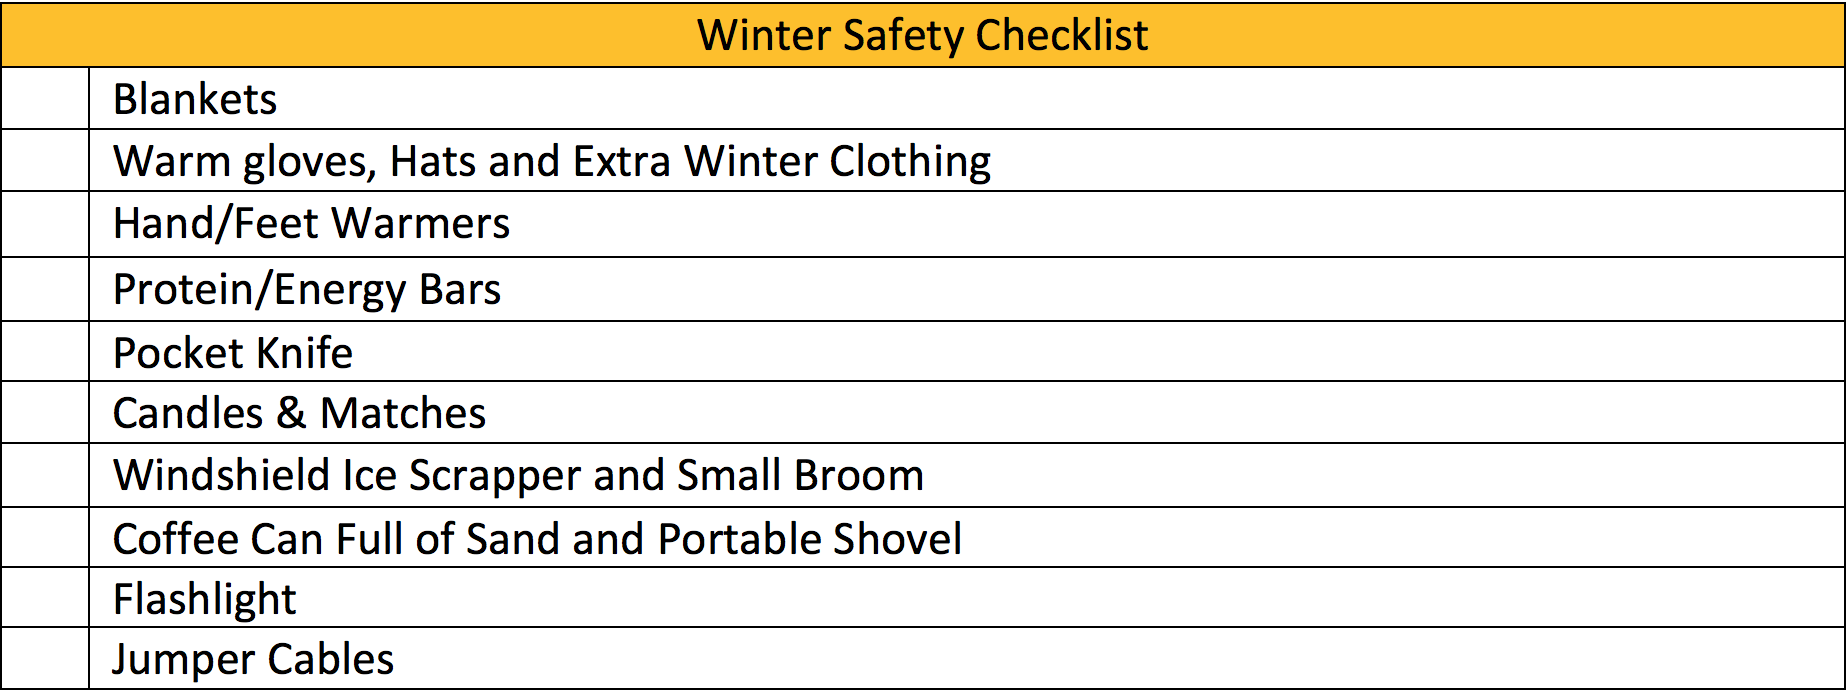 Winter Safety Checklist